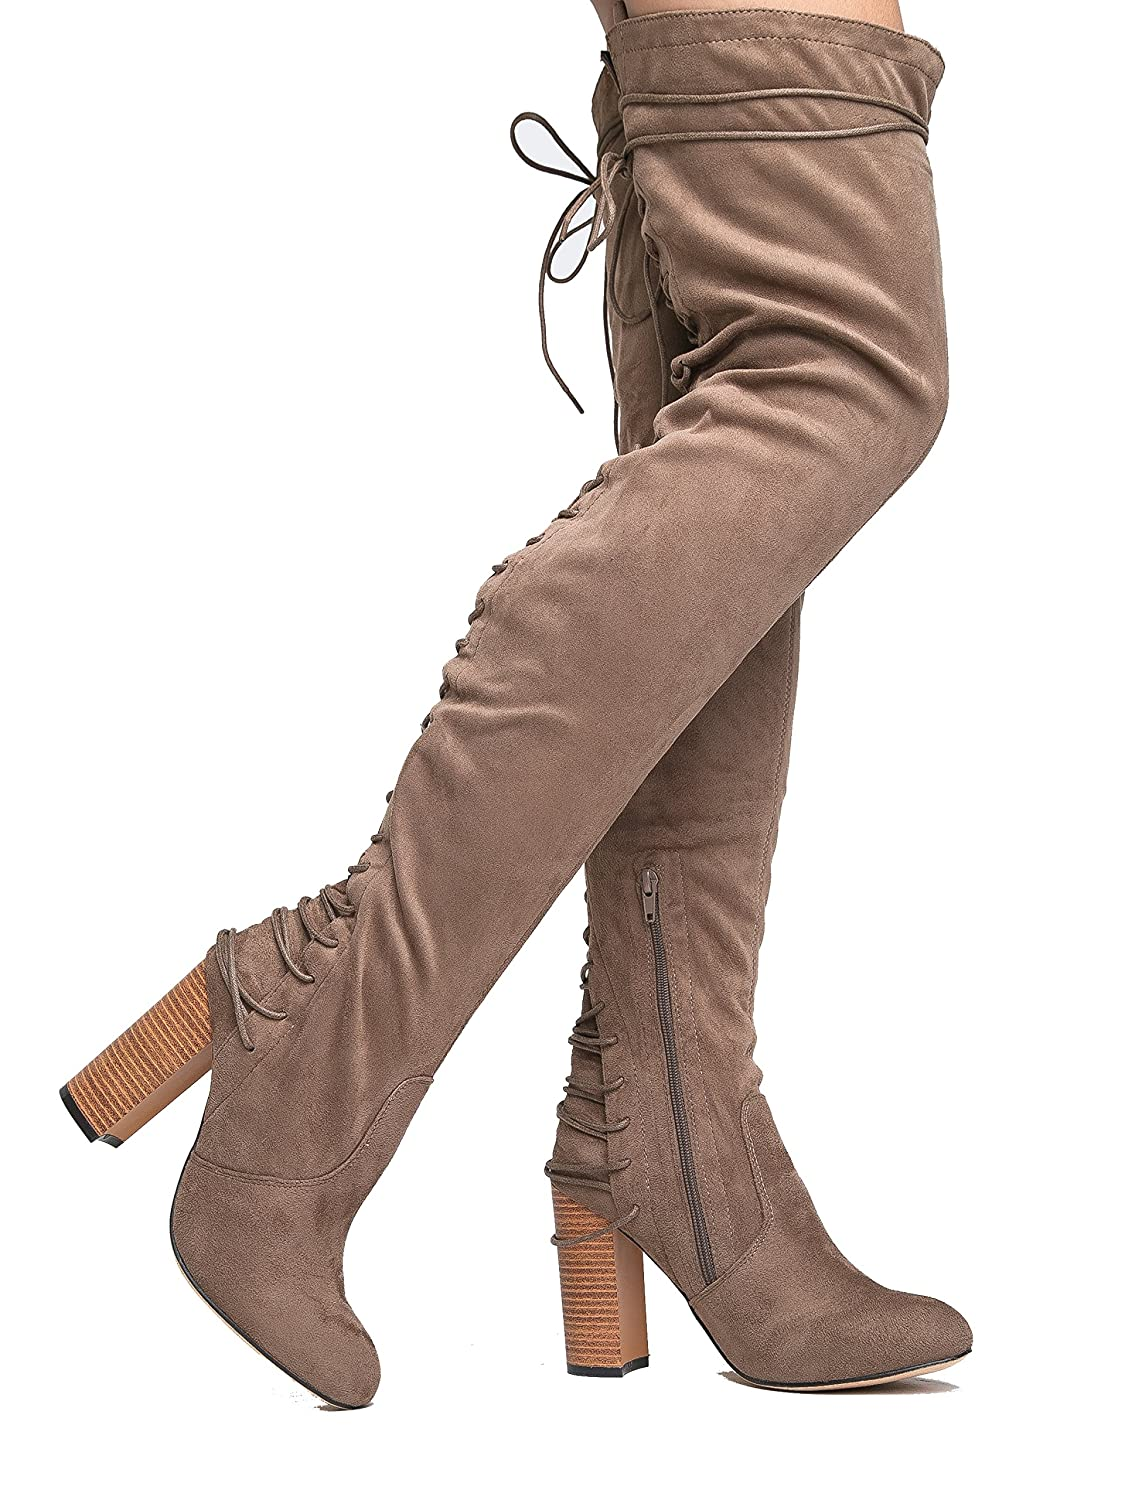 J. Adams Koko Thigh High - High Heel Shoe - Gorgeous Lace up Over The Knee Boot B0773KRGJC 8 B(M) US|Taupe Suede**